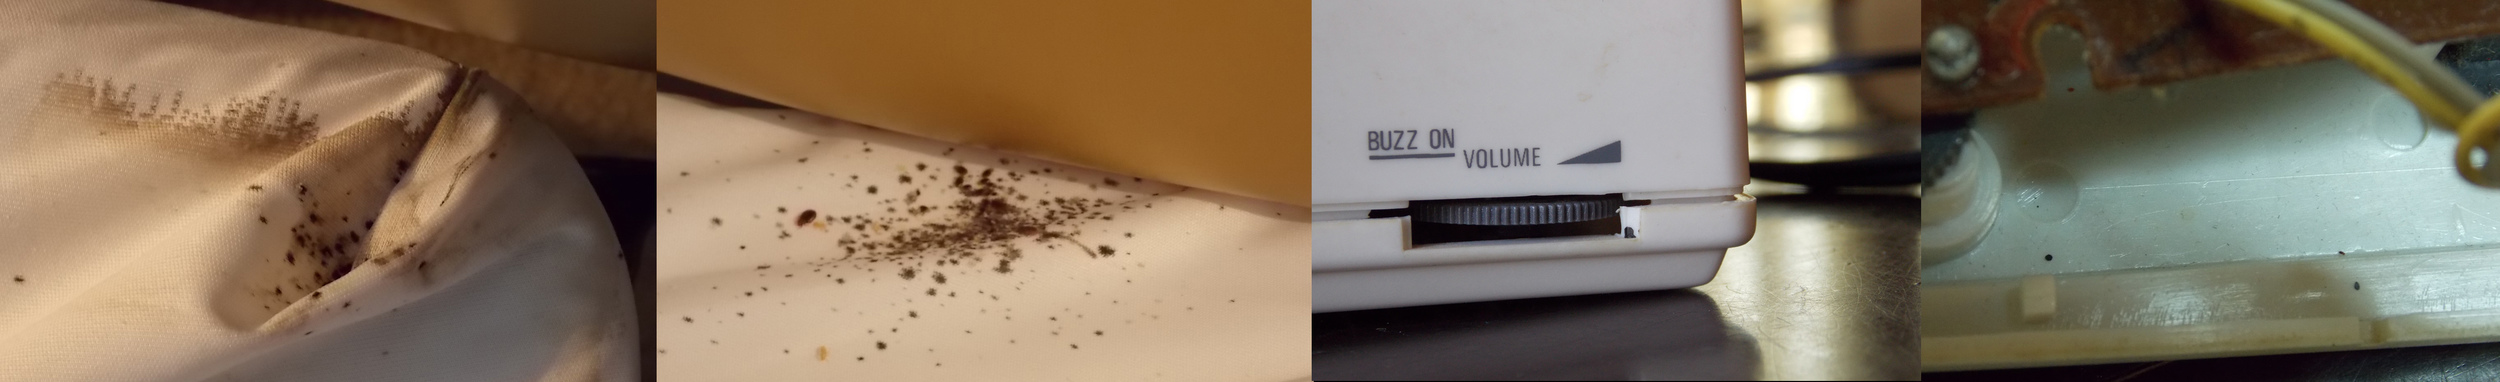 From left to right:  1. and 2. bed bug fecal spotting on fitted sheet at head of bed; 3. clock radio volume conrol served as an egress point for bed bugs, note the one fecal spot on bottom right; 4. two fecal spots on inside of clock radio.